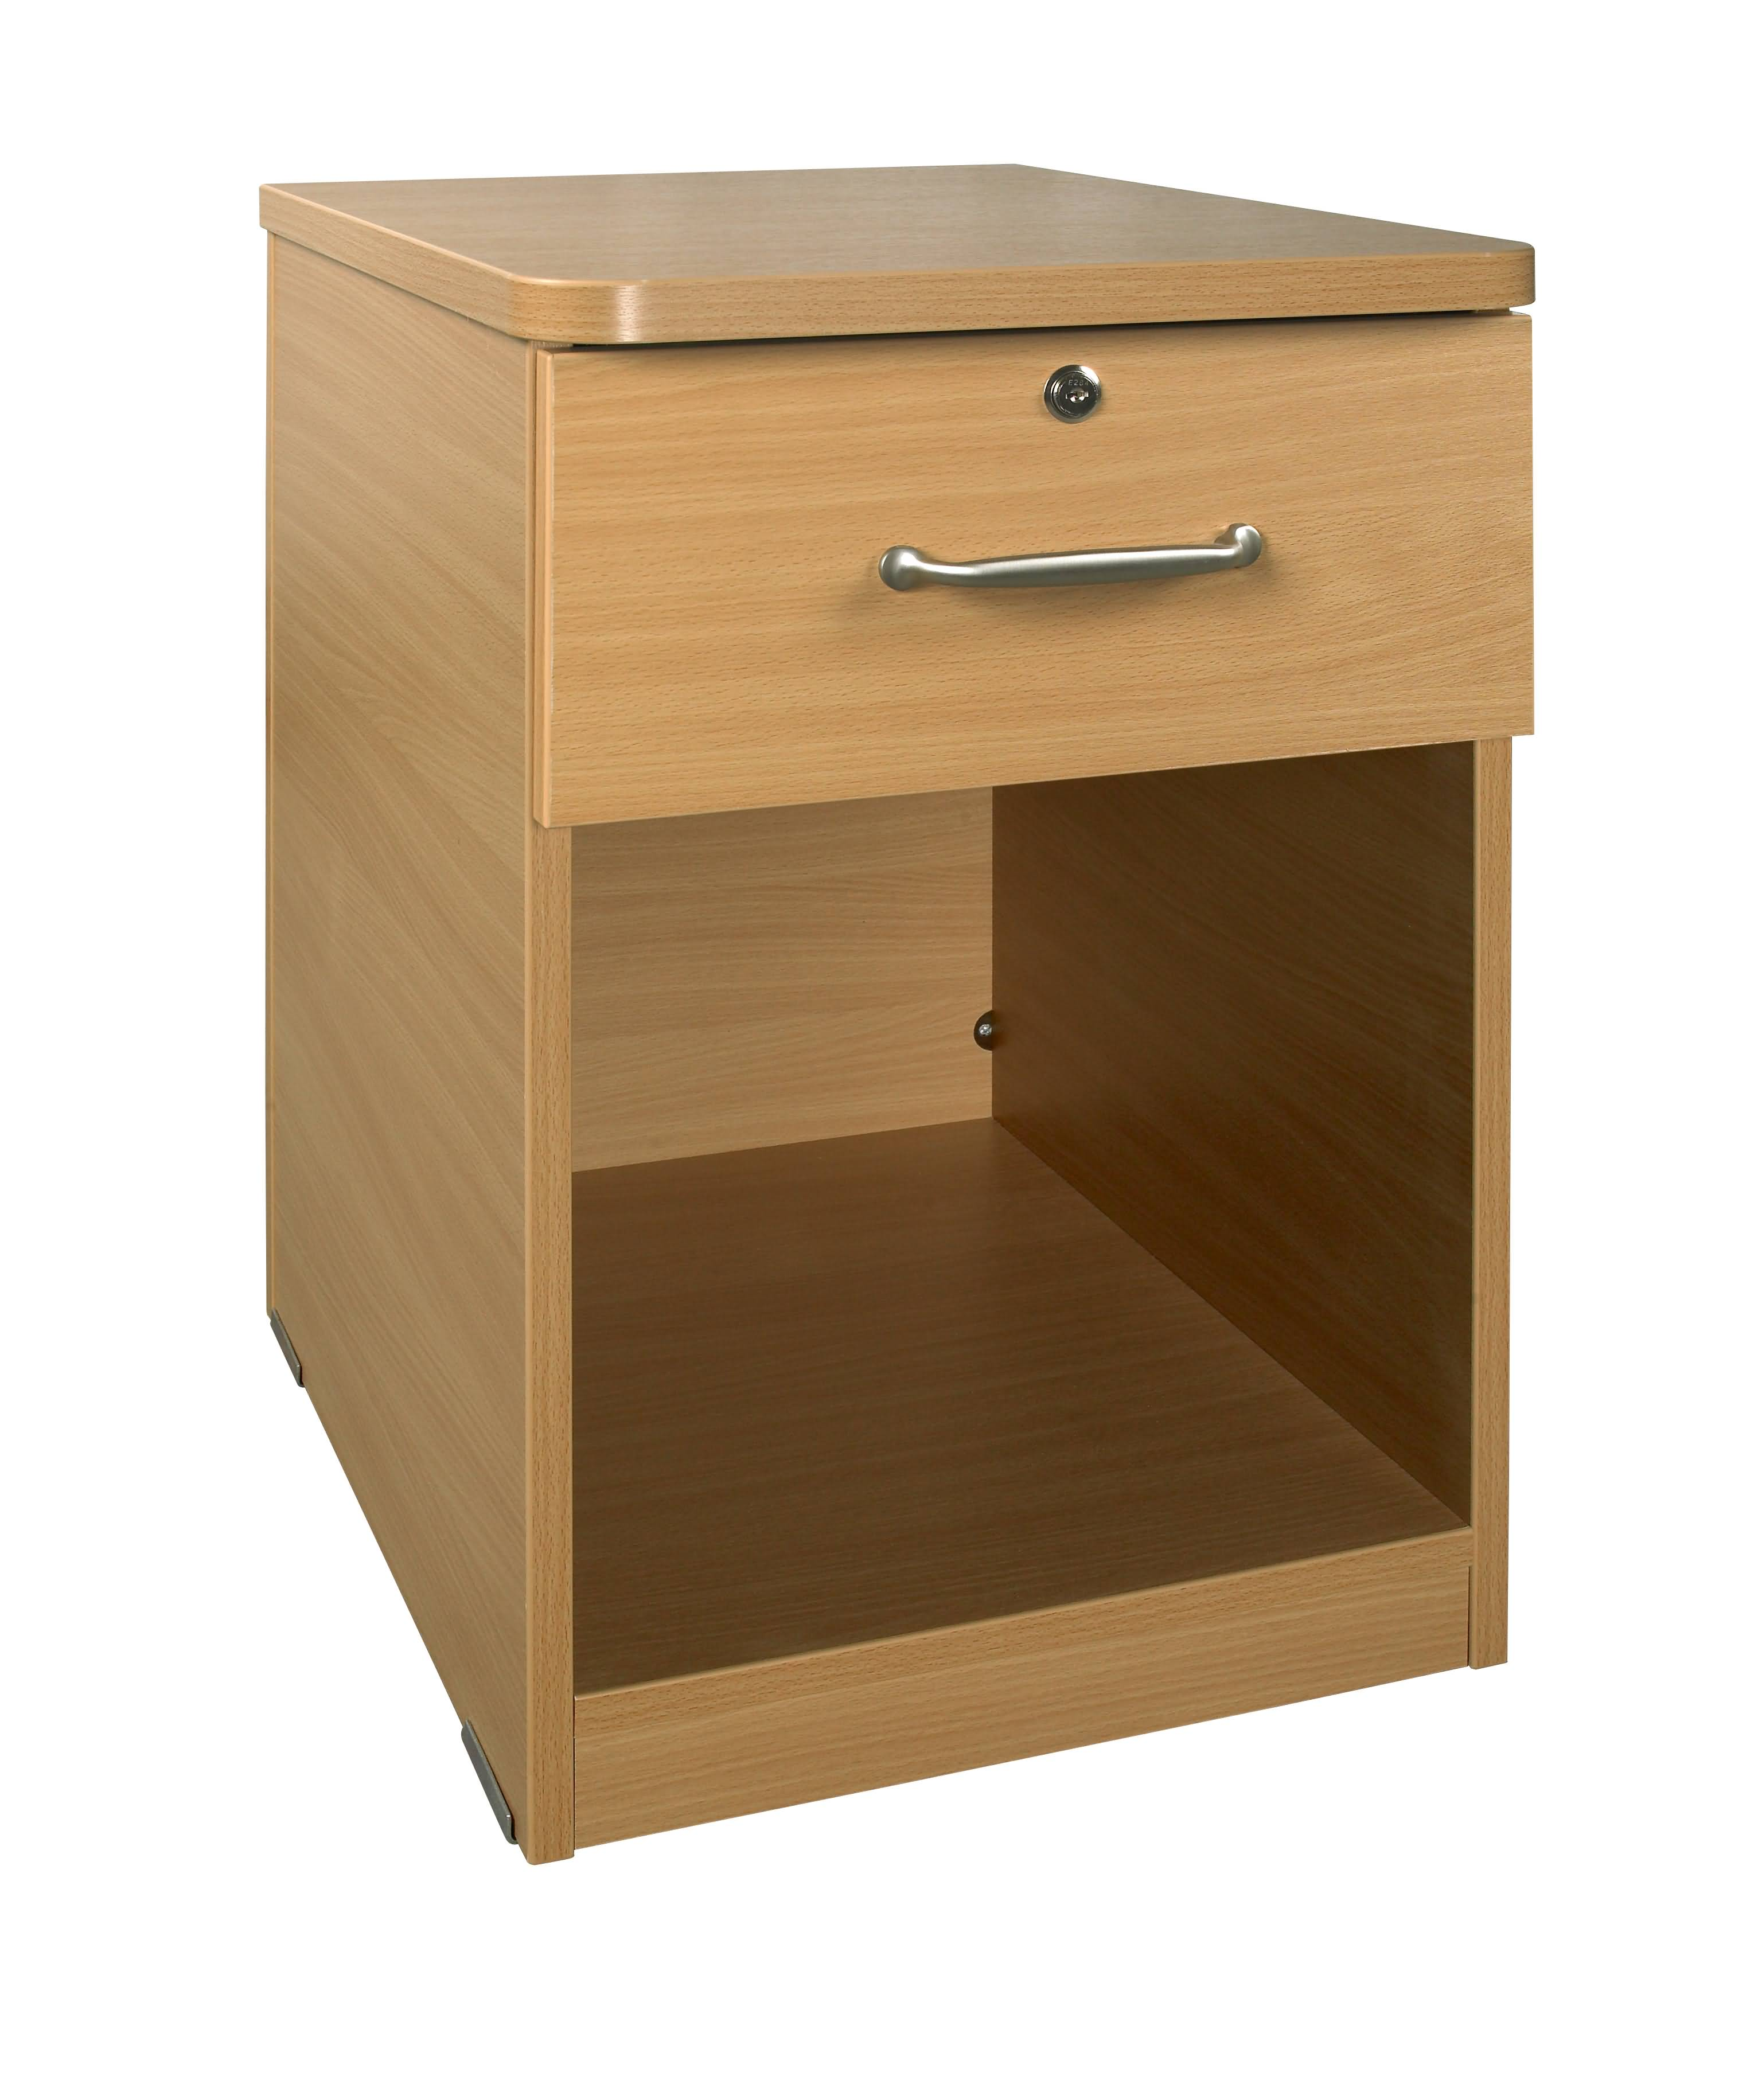 FUSMBC02 Bedside Cabinet 1 Drawer Open